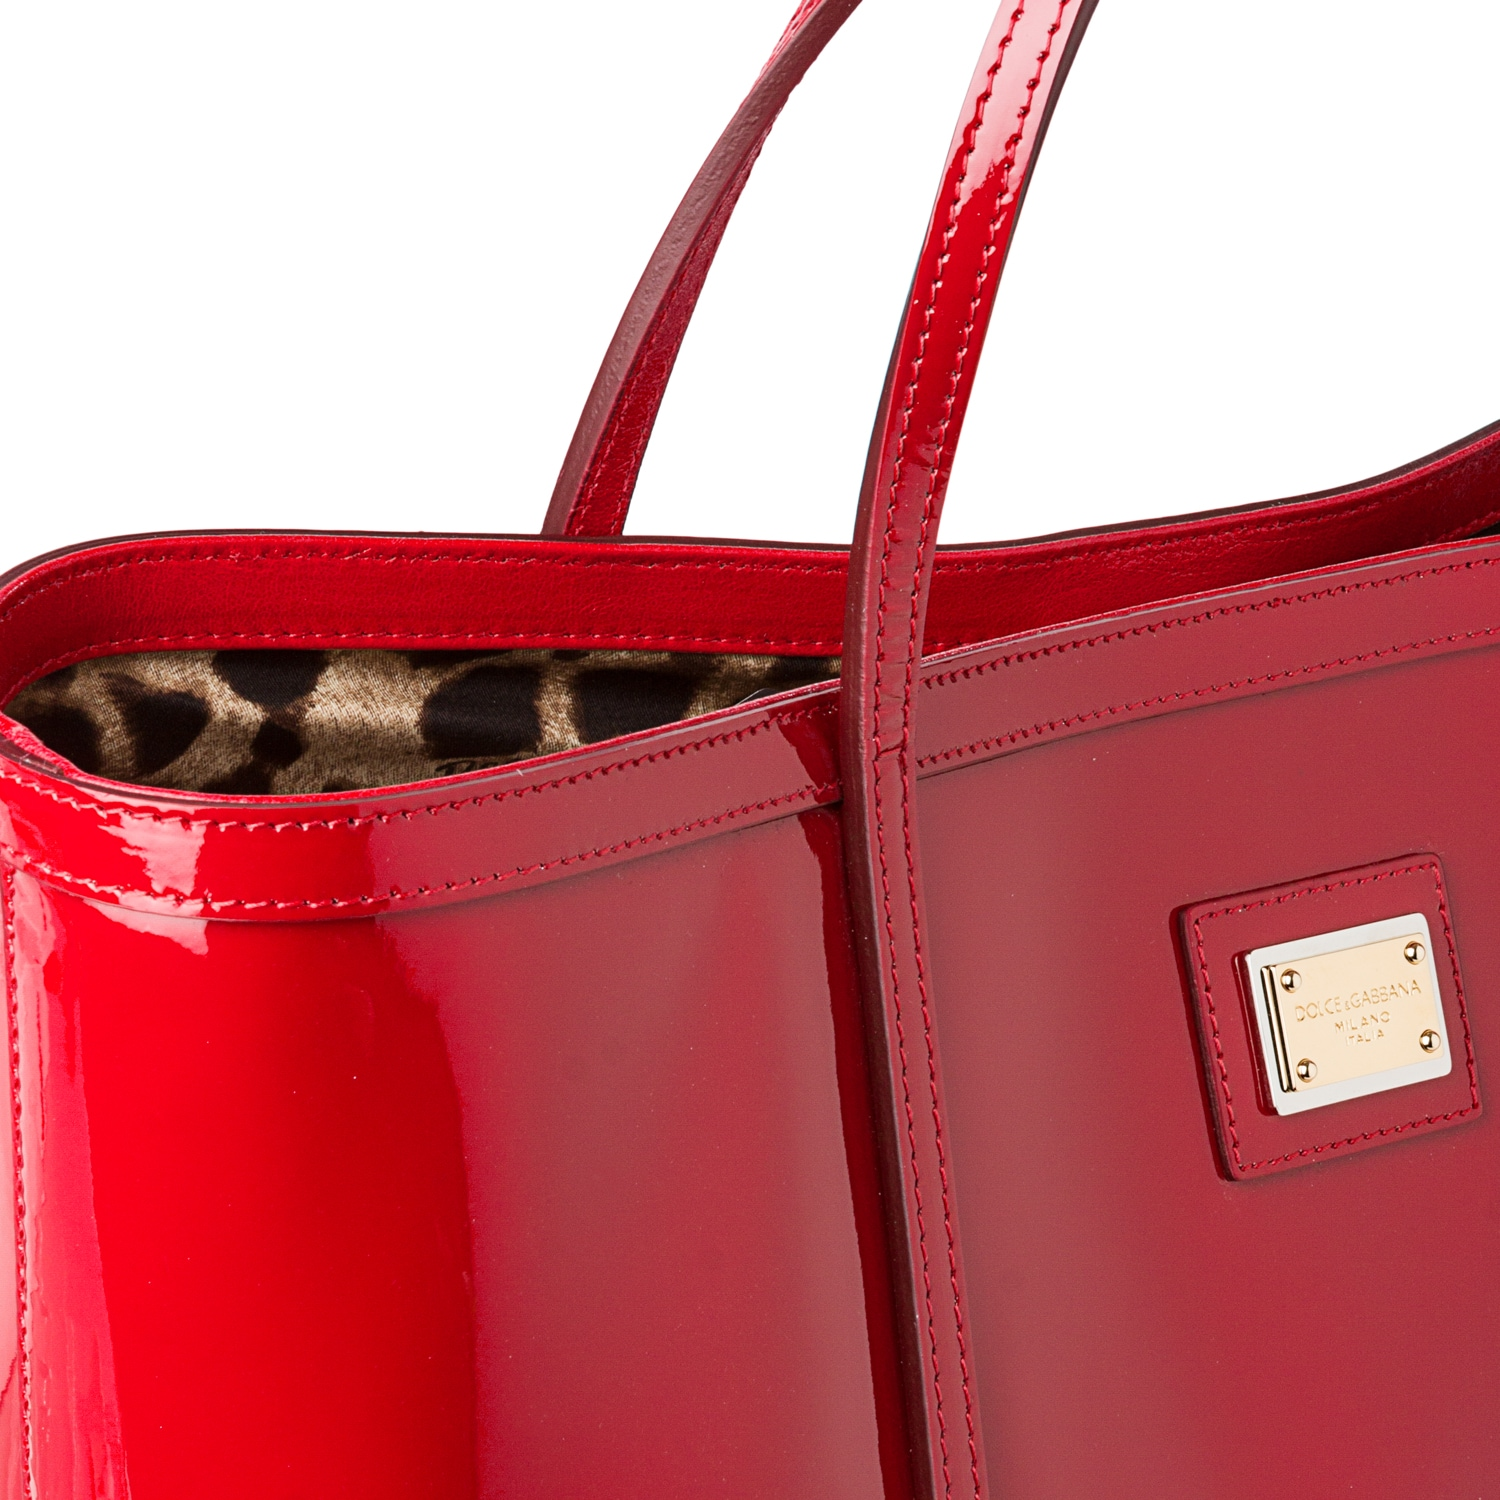 ... Shop Dolce Gabbana Miss Escape Red Patent Leather Tote Bag - Free  Shipping Today - Overstock ... 1dd8291968af9